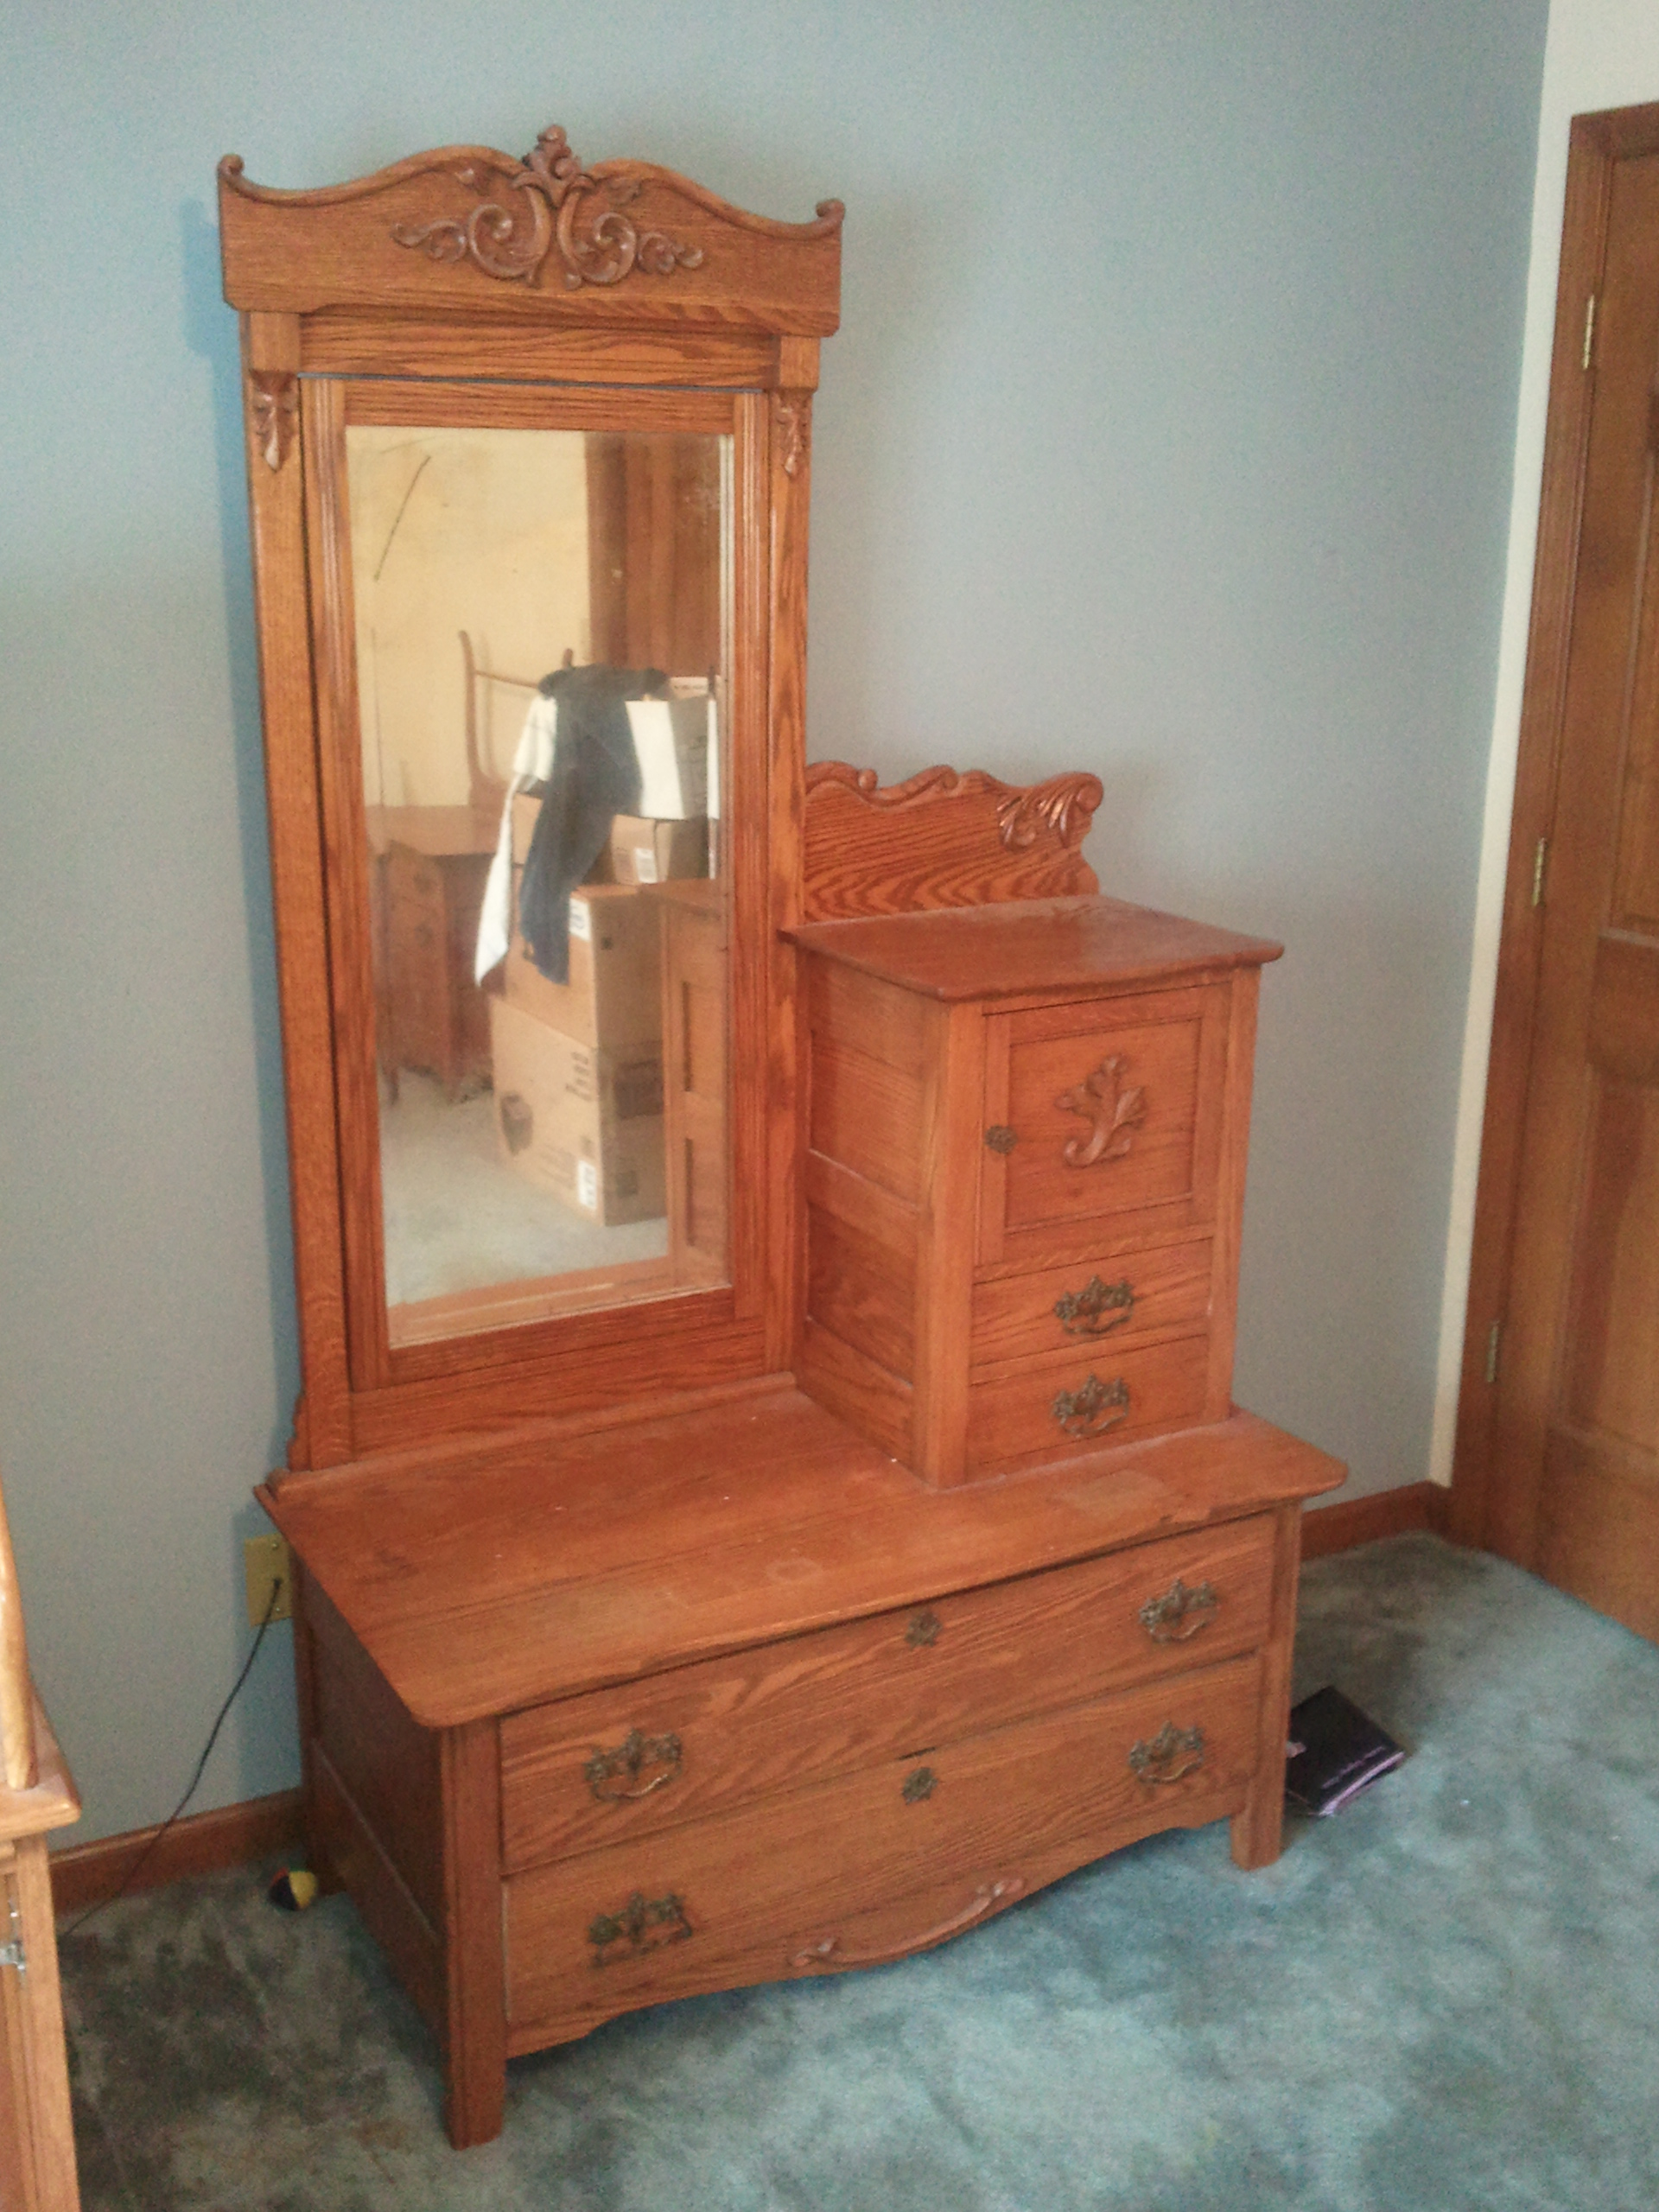 3 piece antique bedroom set for sale for Old furniture